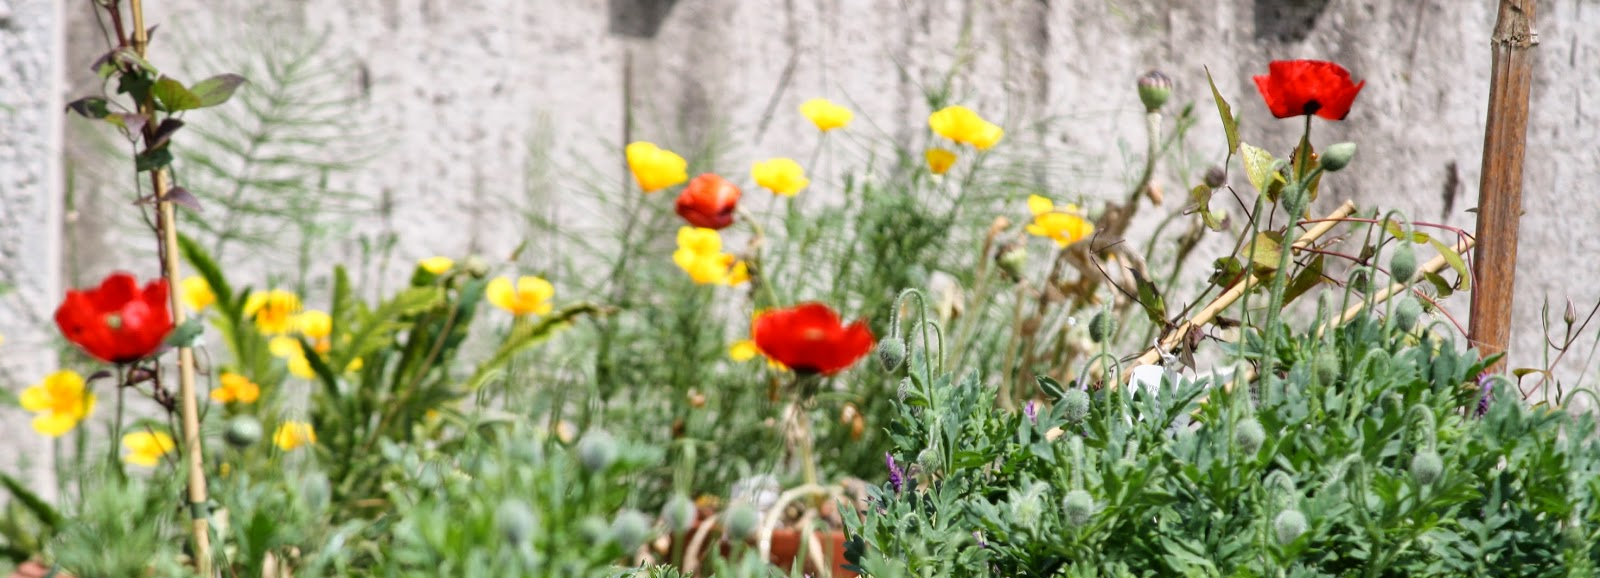 Plant, Handmade Monday : Poppies In The Garden